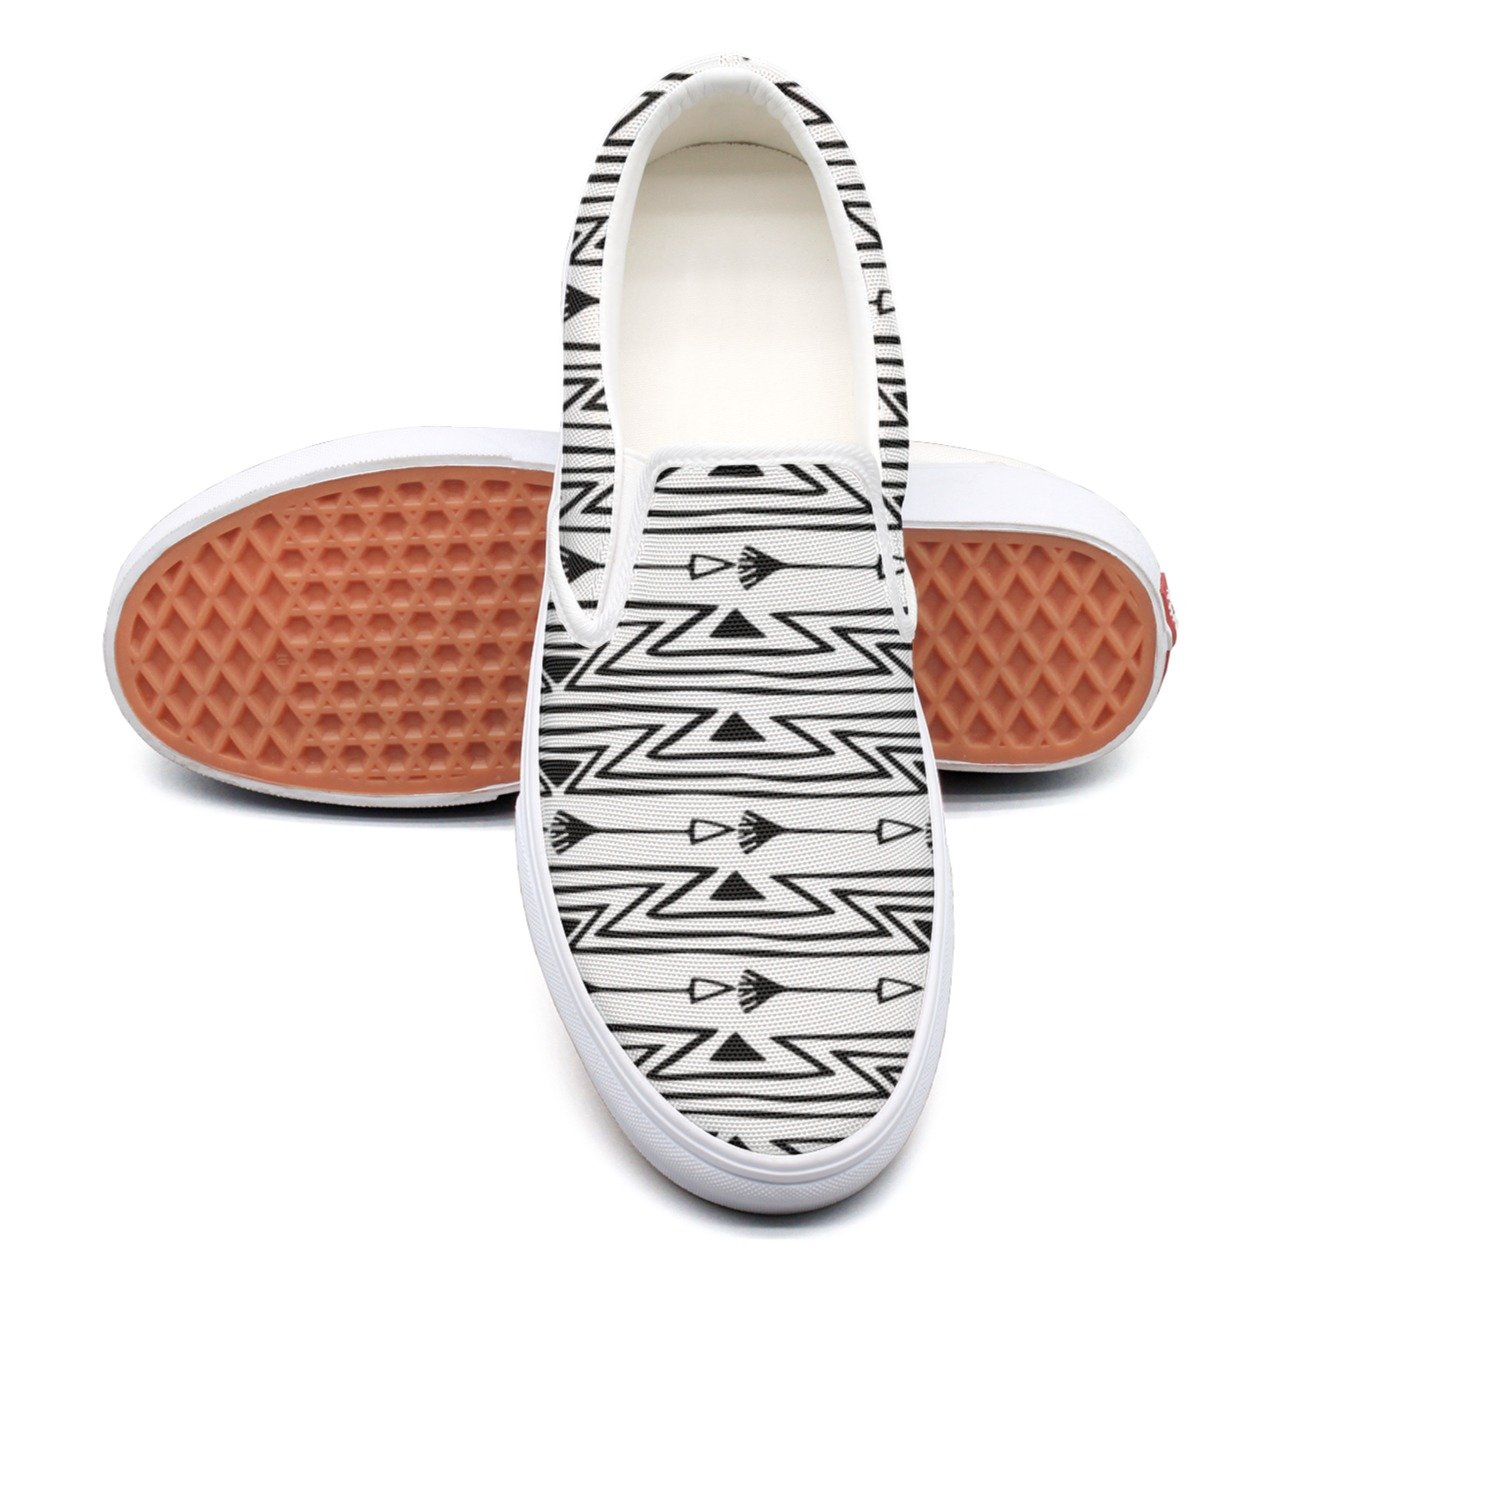 2cc3f02c8fad Amazon.com  VCERTHDF Boho Style Tribal Arrow Pattern Fashion Slip-On Shoe  Mens White  Sports   Outdoors